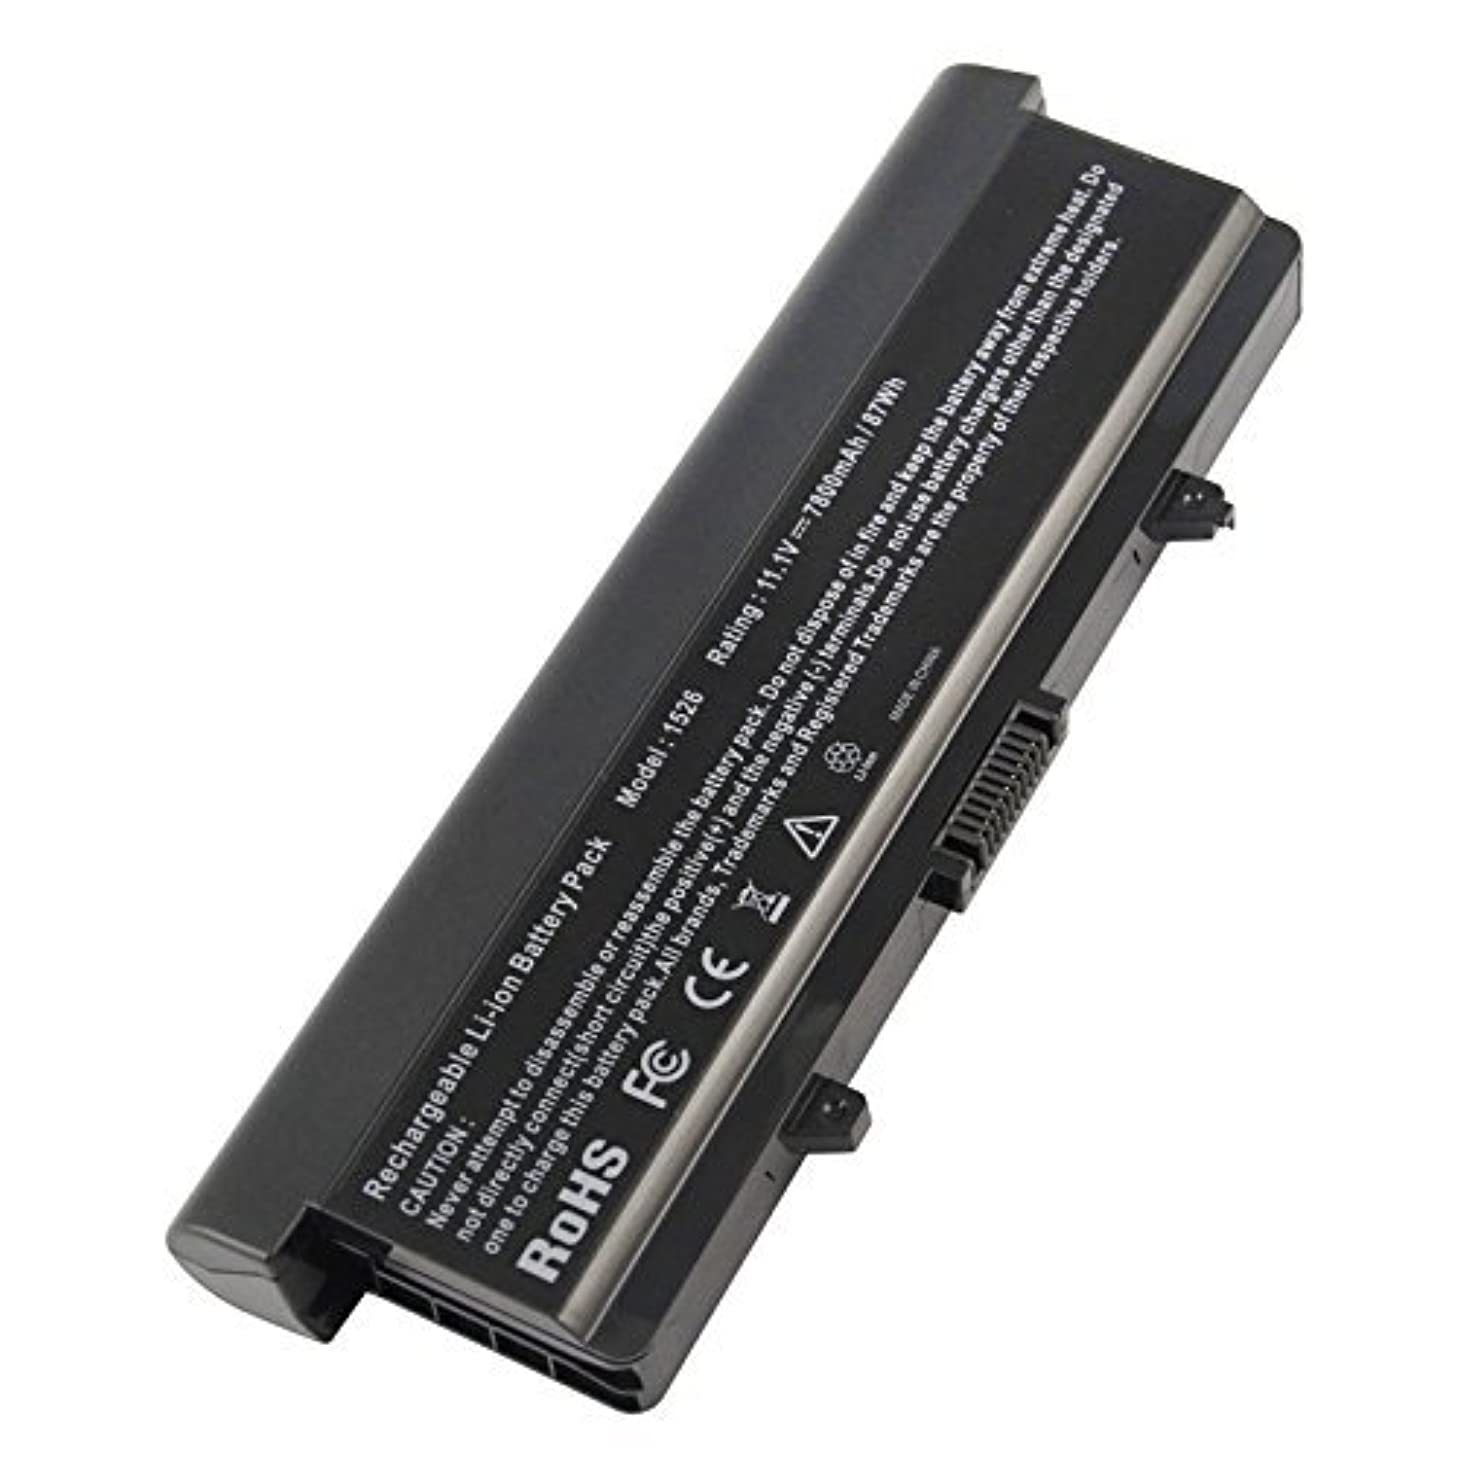 High Capacity Battery for Dell Inspiron 1545 1526 1525 PP41L PP29L Series Laptop Battery, Fits P/N: GP952 GW252 GW240 X284G RN873 M911 M911G [7800mAh/11.1V/9-Cells] - 12 months warranty